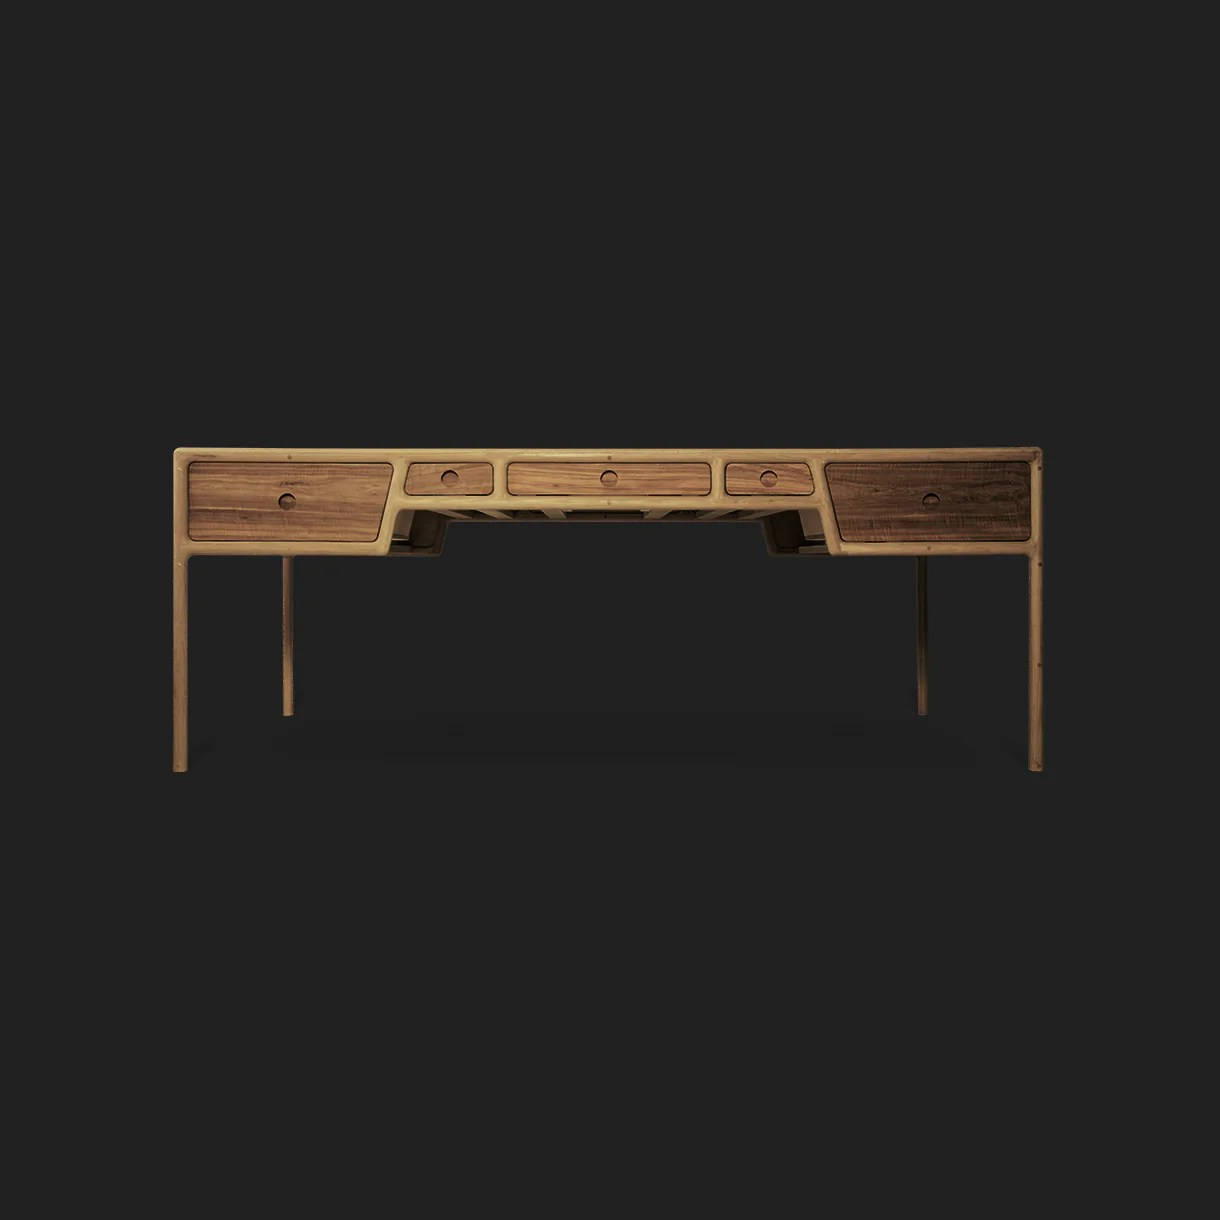 David krynauw s solid wood furniture amp lighting selecting what appeals from the south african s